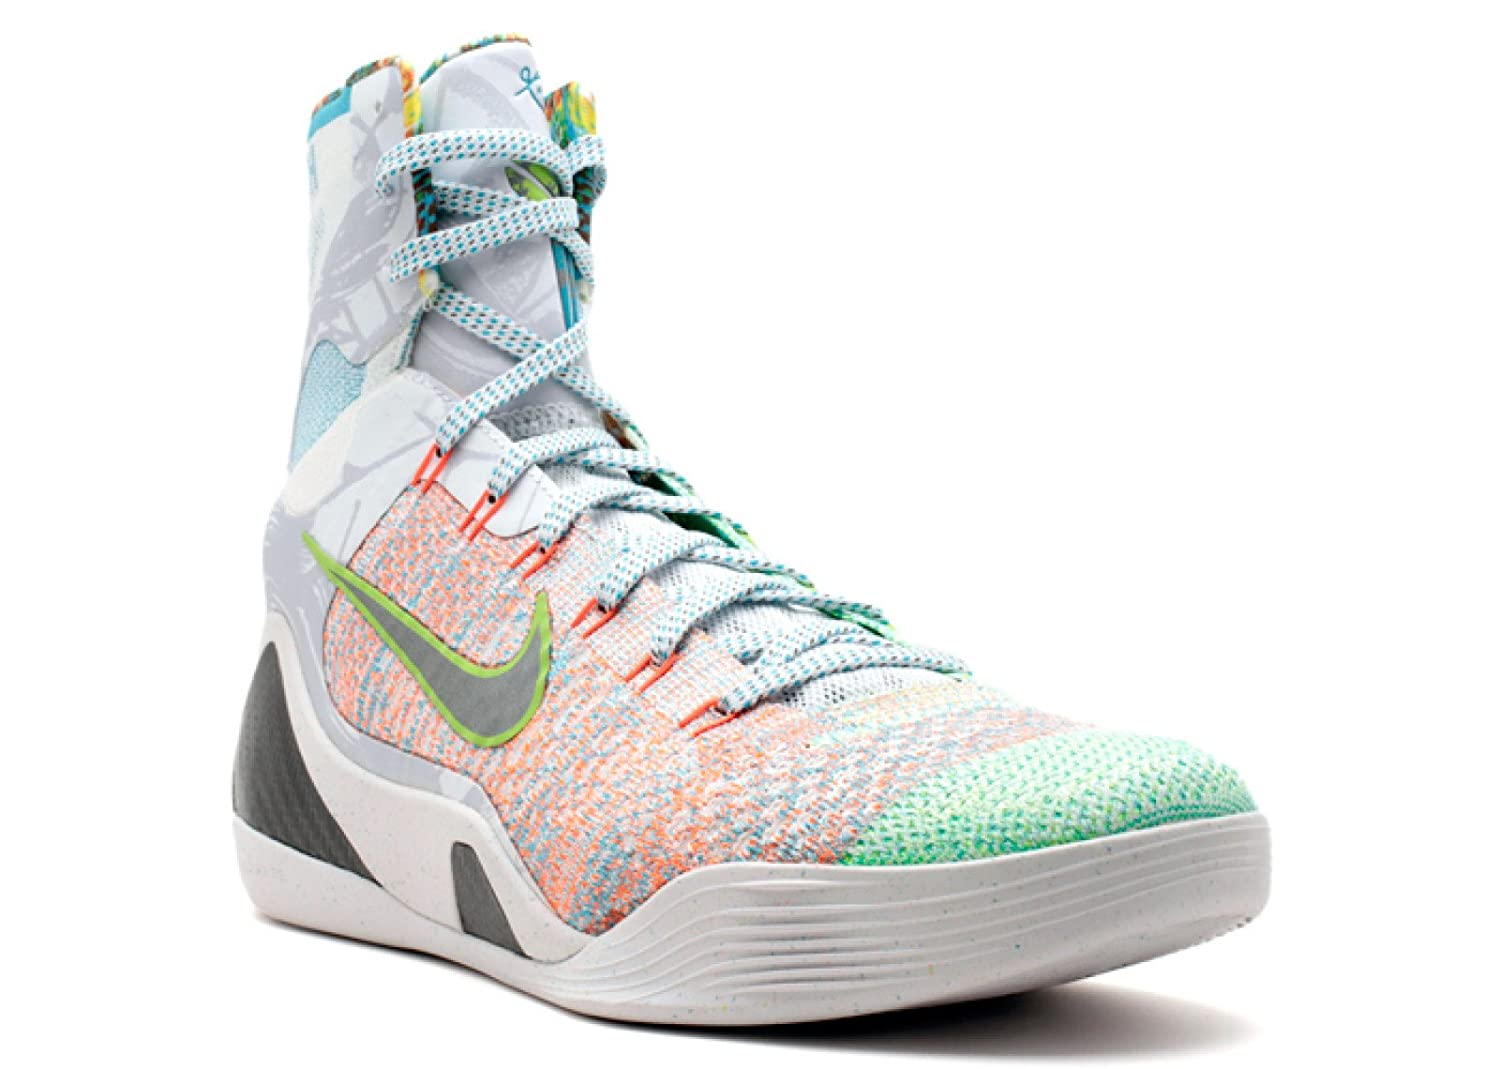 promo code 55225 cefb1 Amazon.com   Nike Kobe IX Elite Premium (What The Kobe)   Shoes